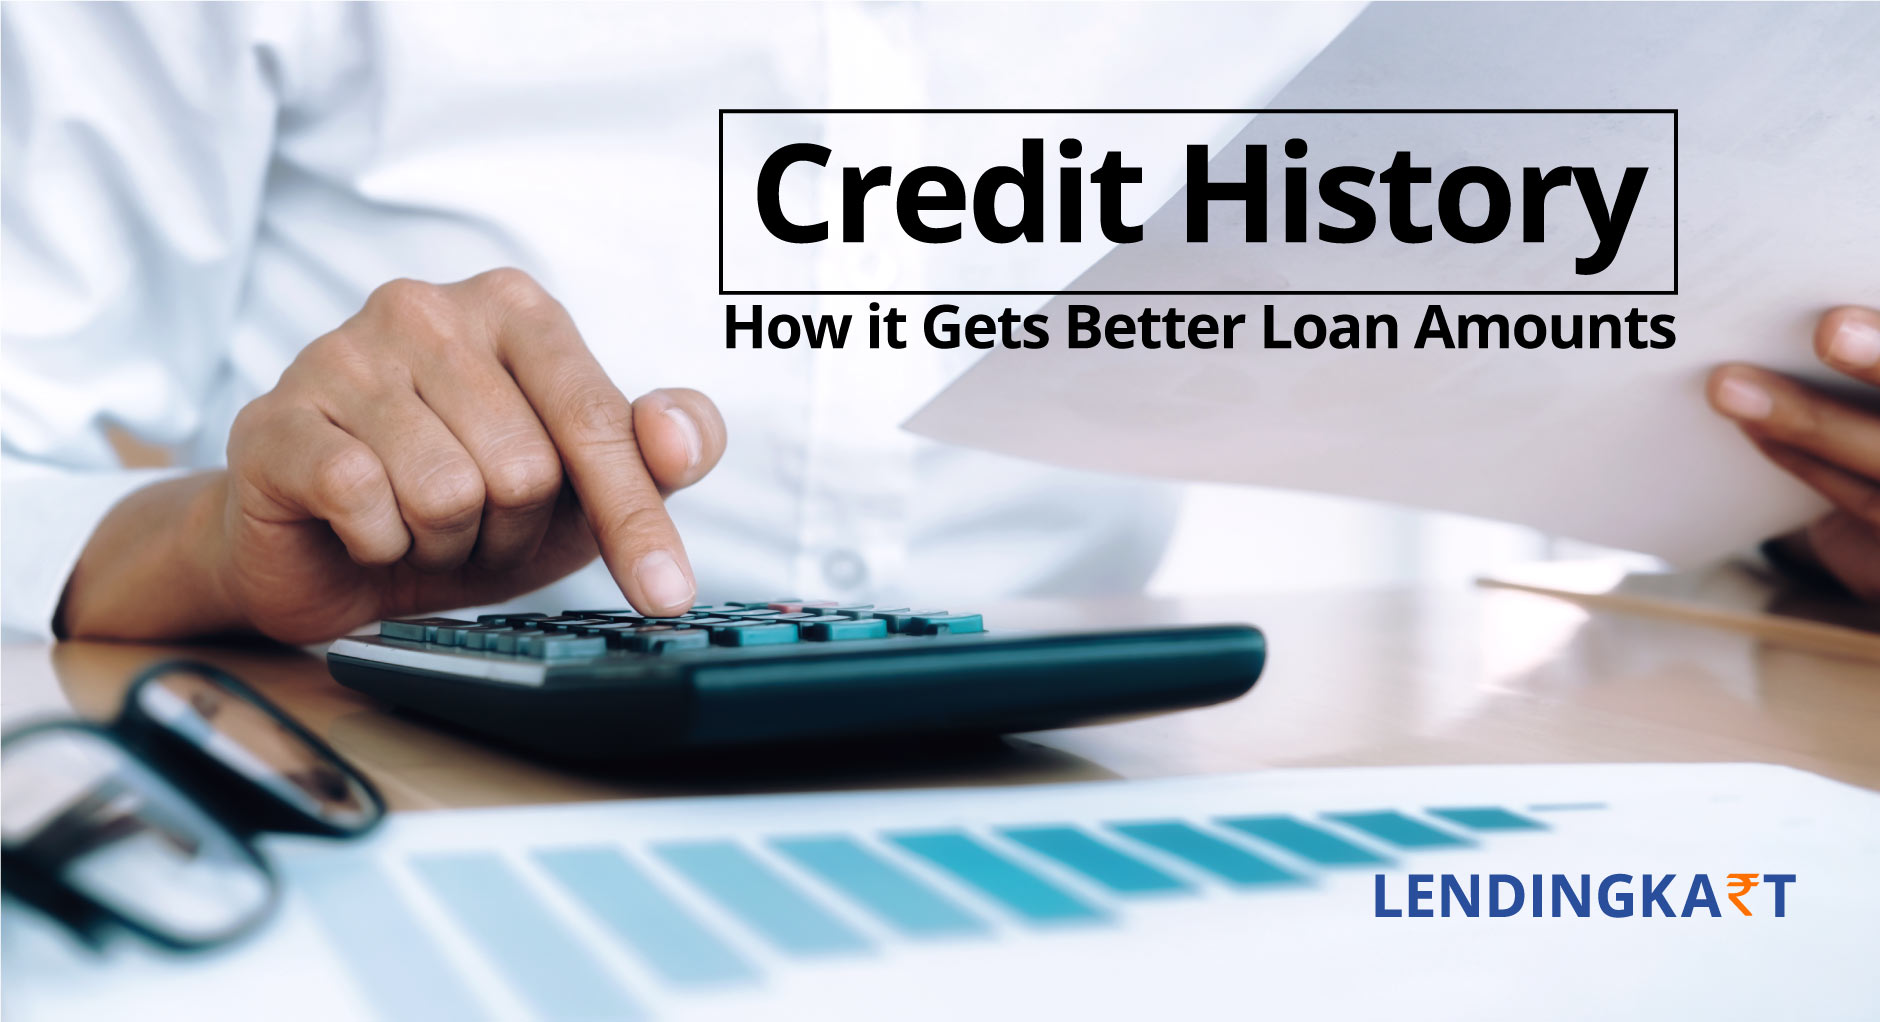 Credit History - How it Gets Better Loan Amounts